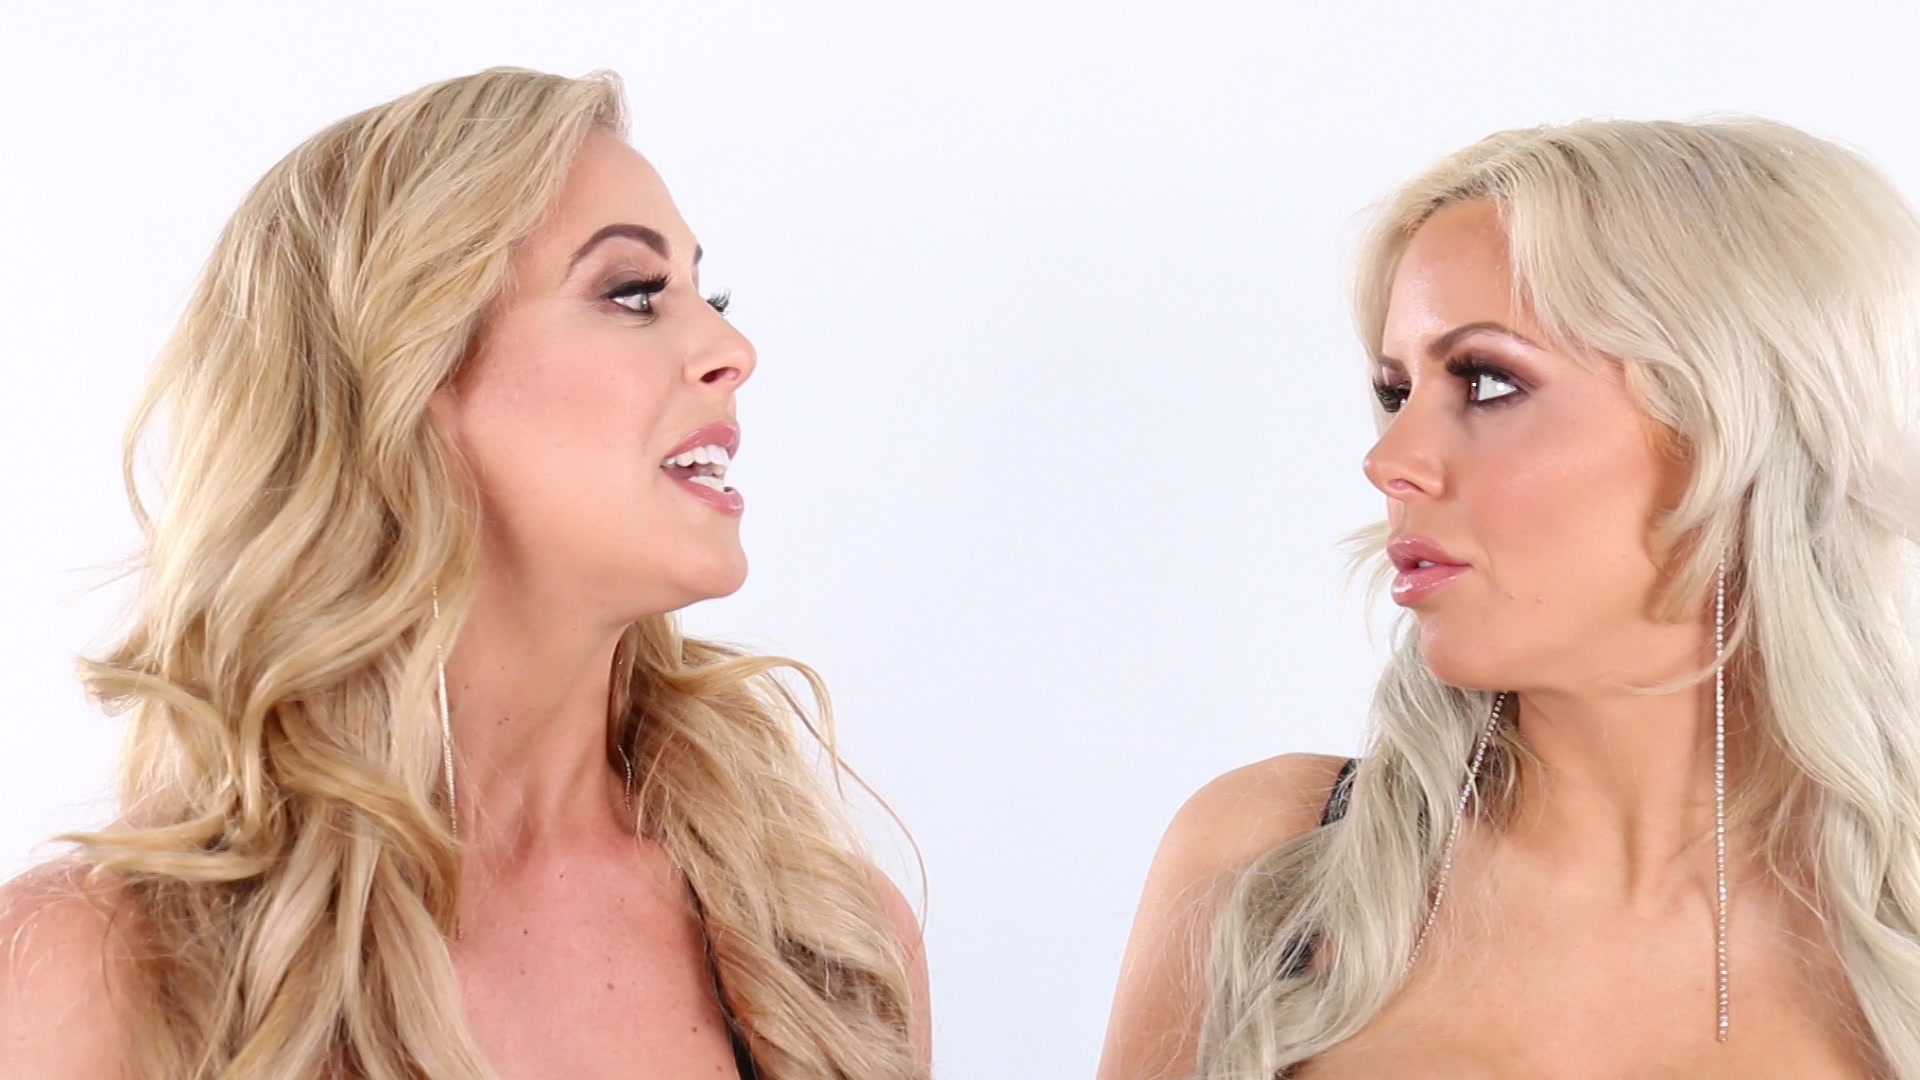 Scene with Cherie DeVille and Nina Elle - image 3 out of 20